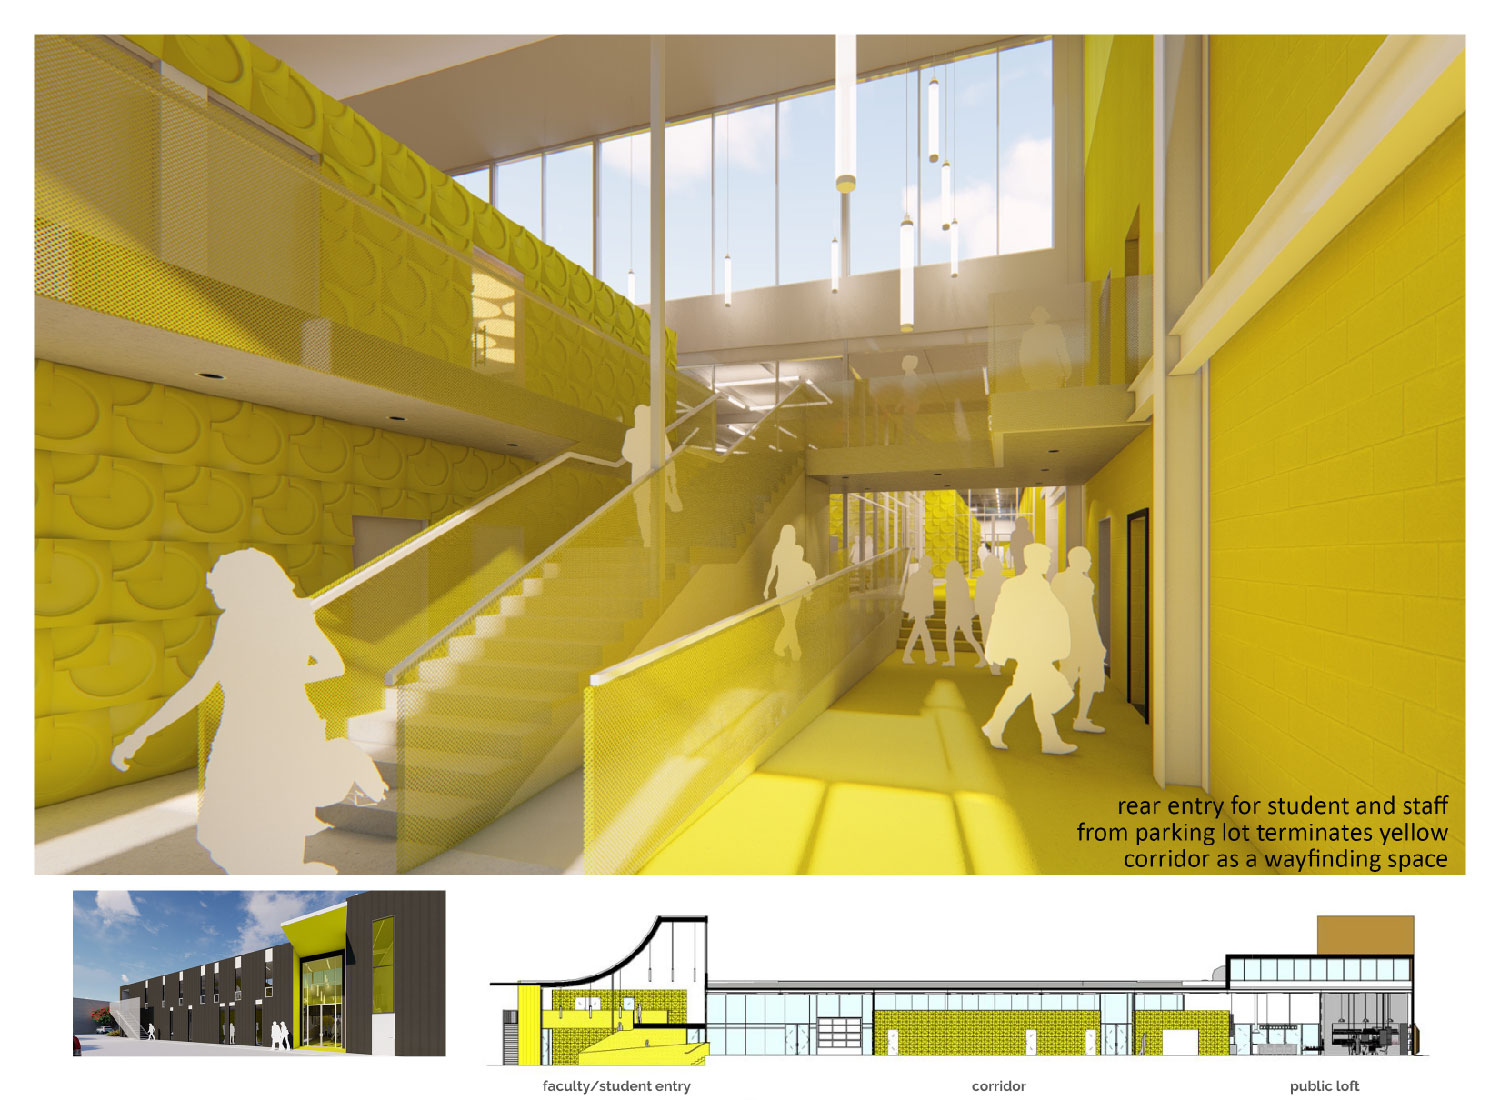 Entry for students from parking lot terminates yellow corridor as a facility wayfinding space. University of Arkansas Community Design Center}